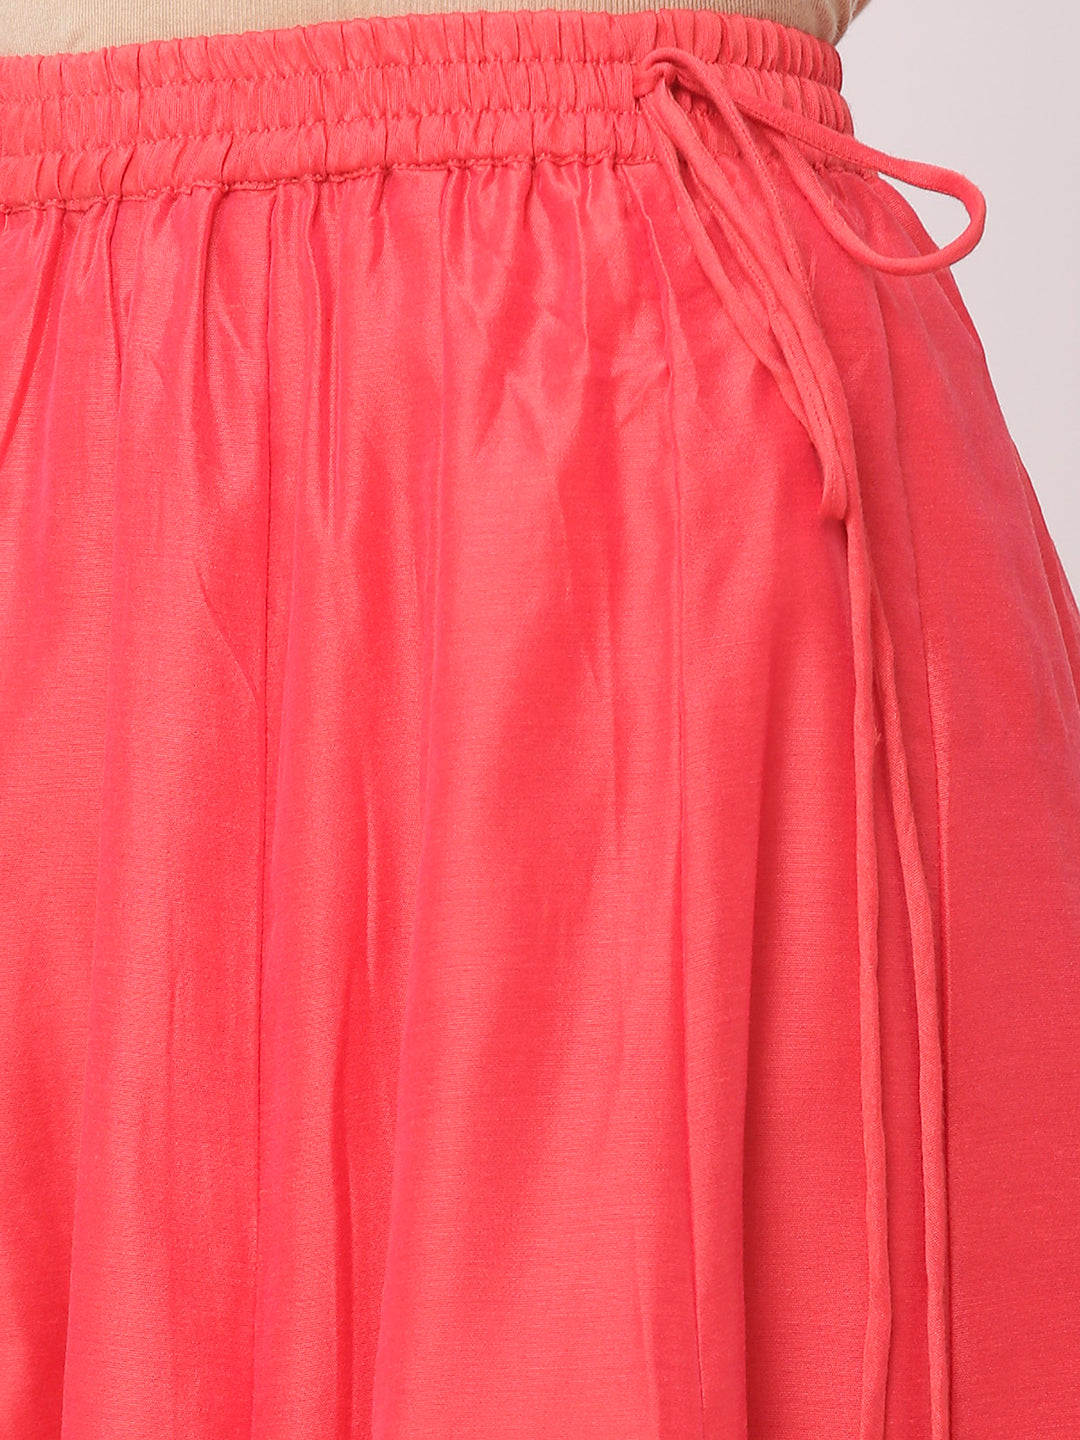 Globus Pink Poly Brocade Solid Skirt-4